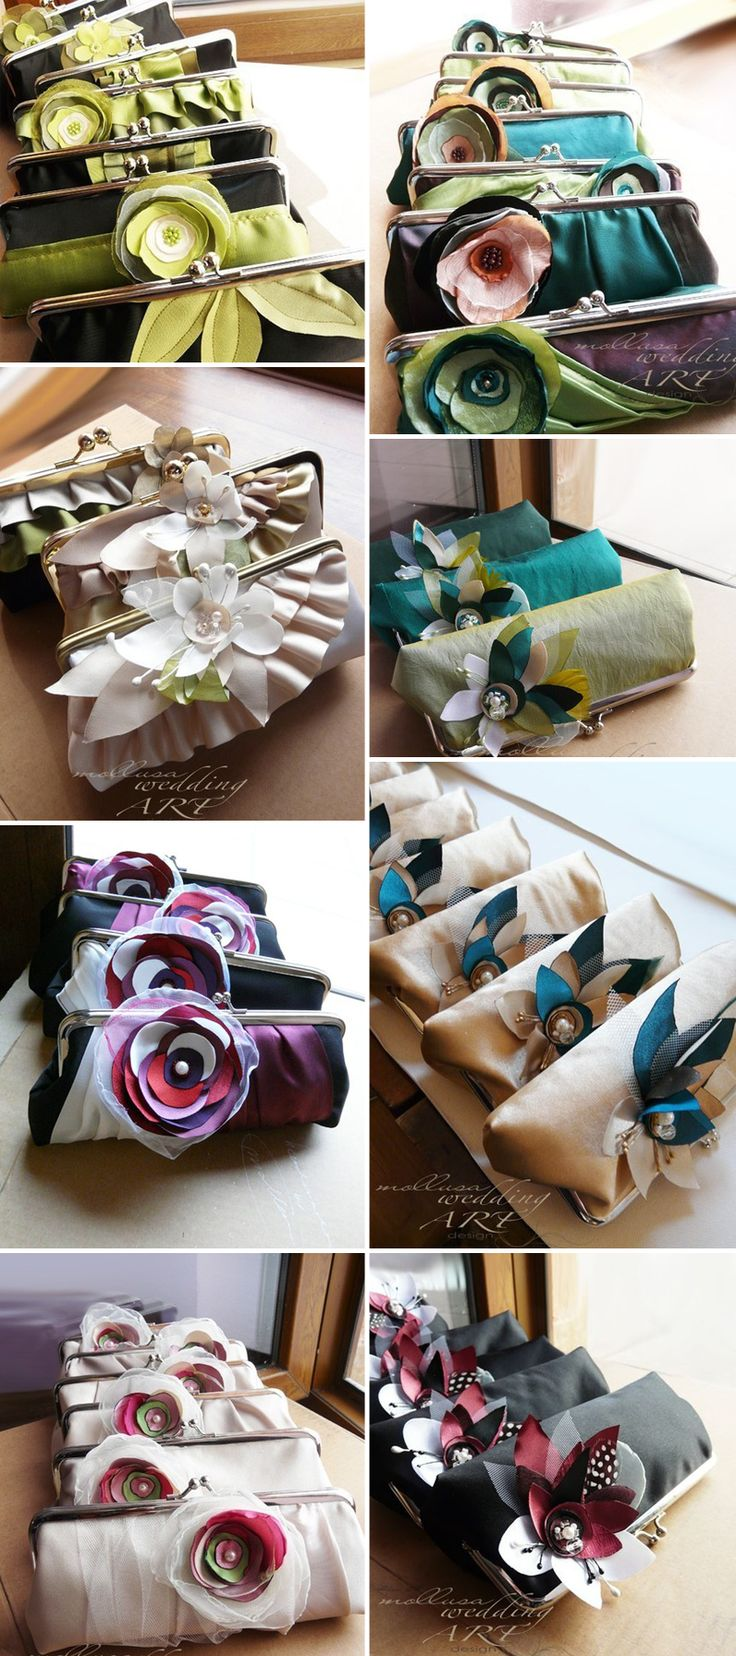 Bridesmaids gifts Clutches from Mollusa- These are gorgeous, but I think you could DIY them by getting cheap plain clutches and then decorating them to match your wedding color palette.  Love this idea though!